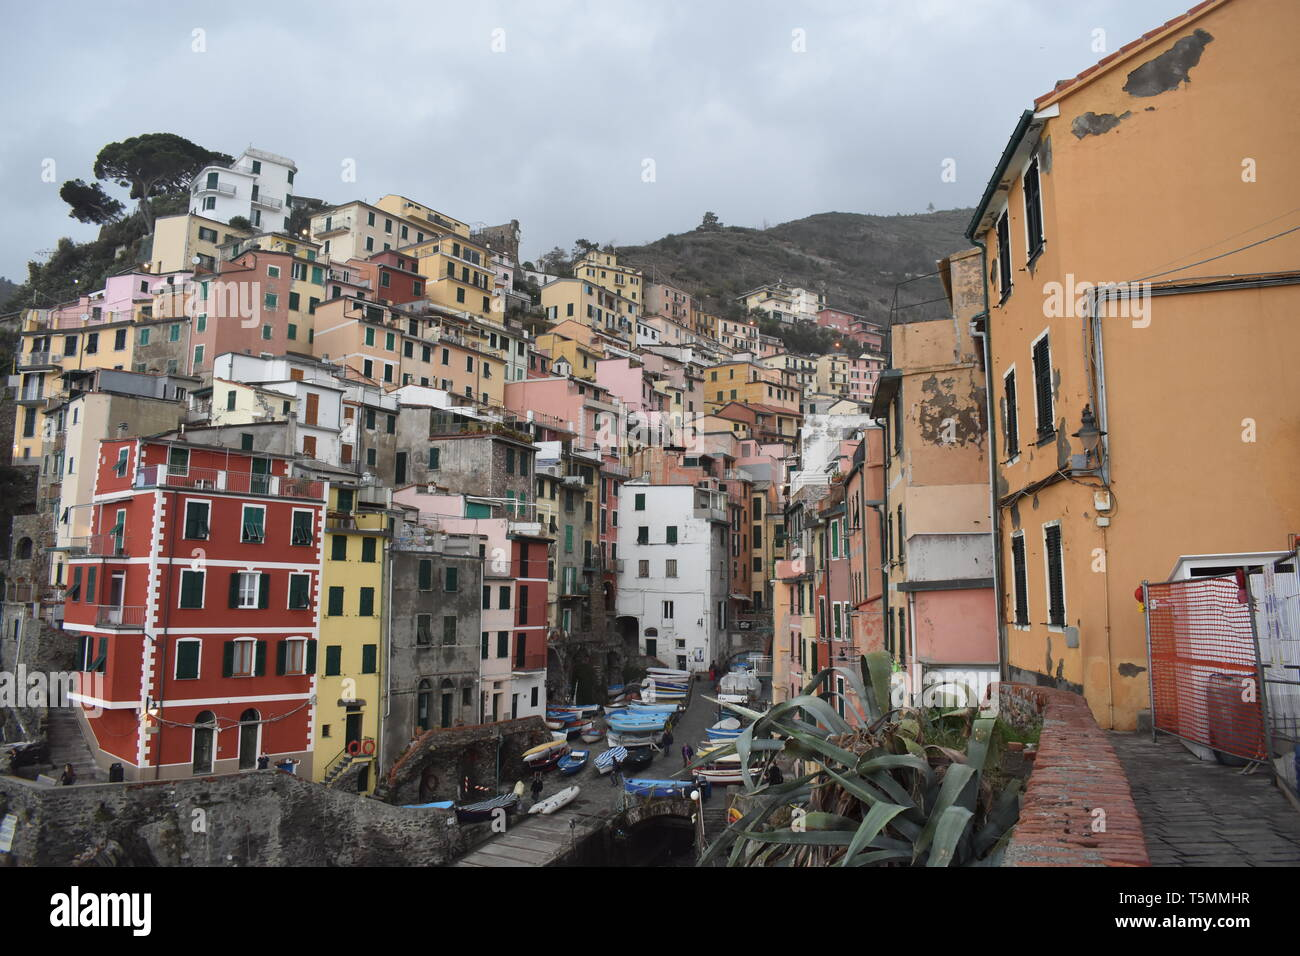 Cinqua Terra Viento, RIomaggiorie, Manarola, Italy Travel Italy Top 10 Best 10 Travel Europe Spectacular Images More of the Best Sea Views Nice Houses - Stock Image